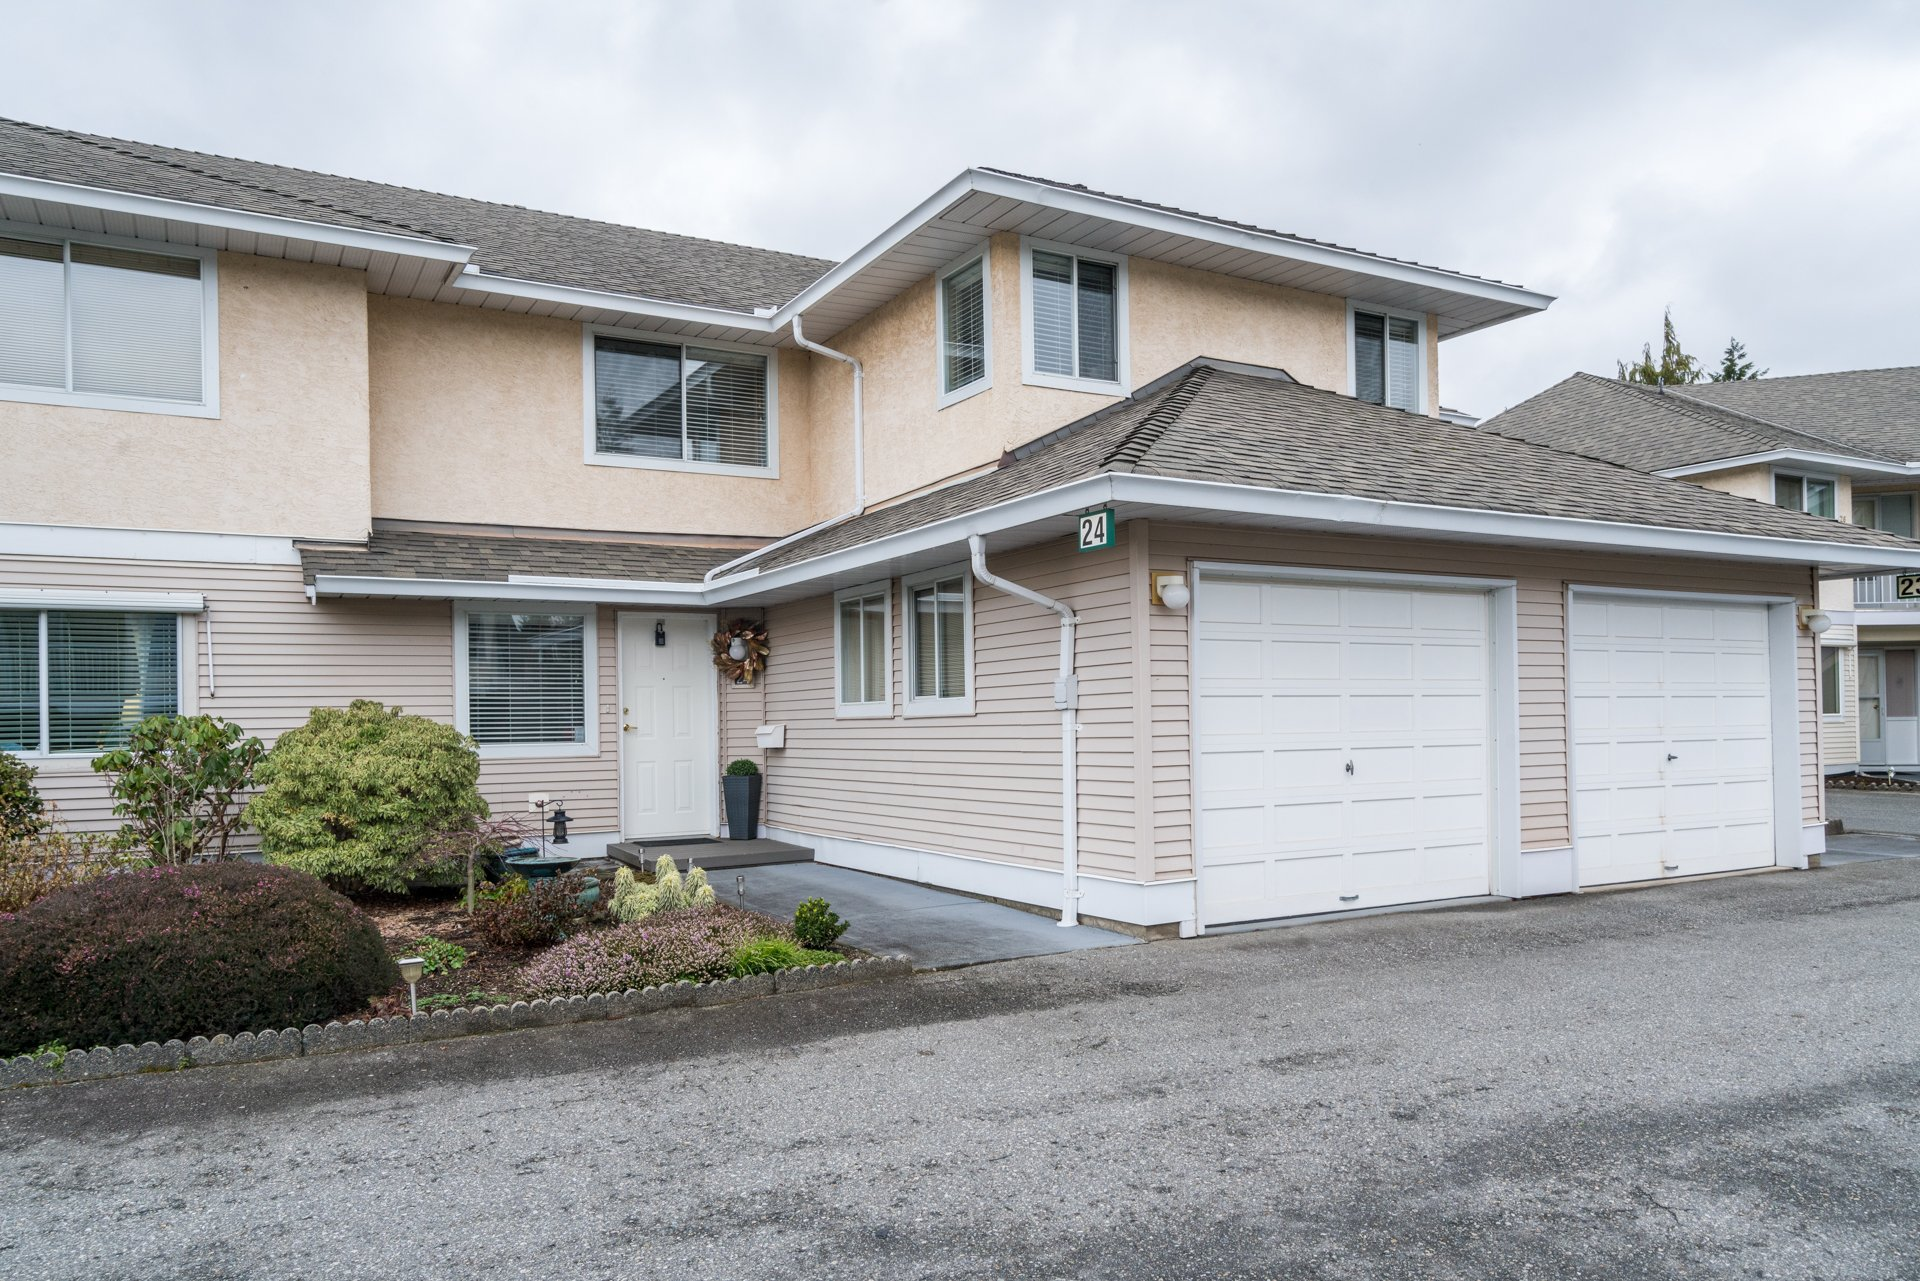 Main Photo: 24 2475 Emerson in Abbotsford: Abbotsford West Townhouse for sale : MLS®# R2233341